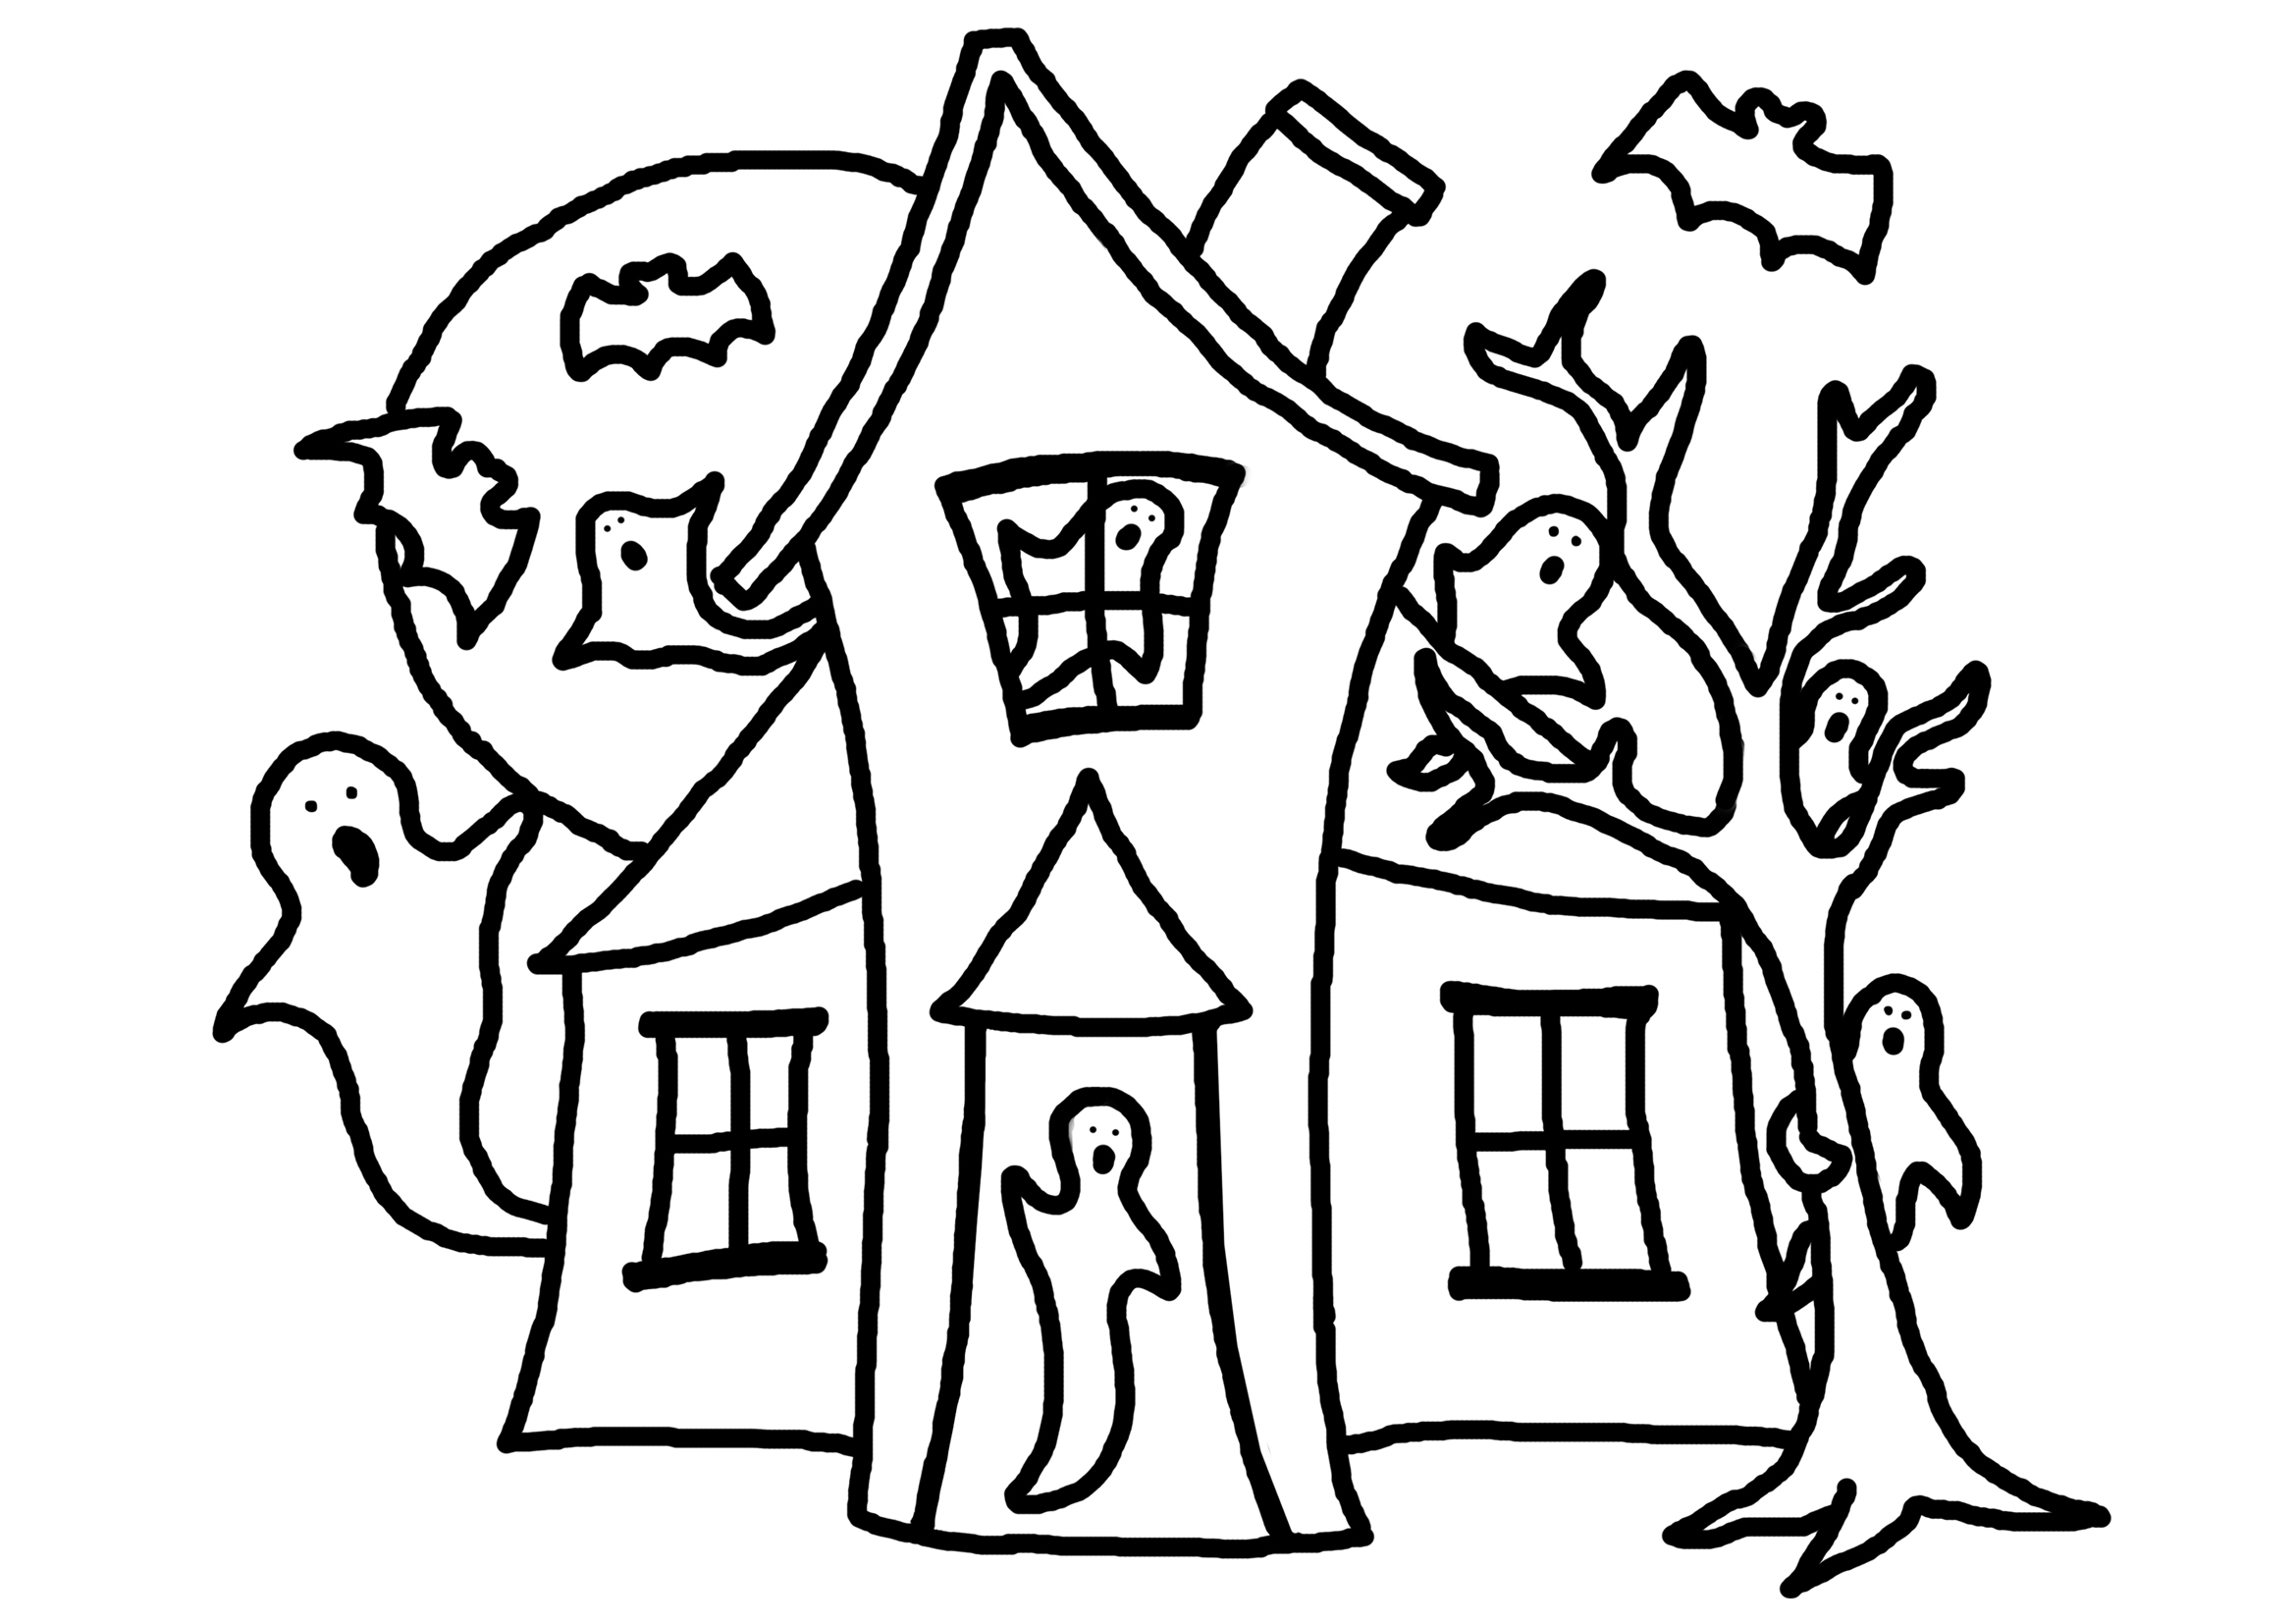 haunted house coloring page 25 free printable haunted house coloring pages for kids page house coloring haunted